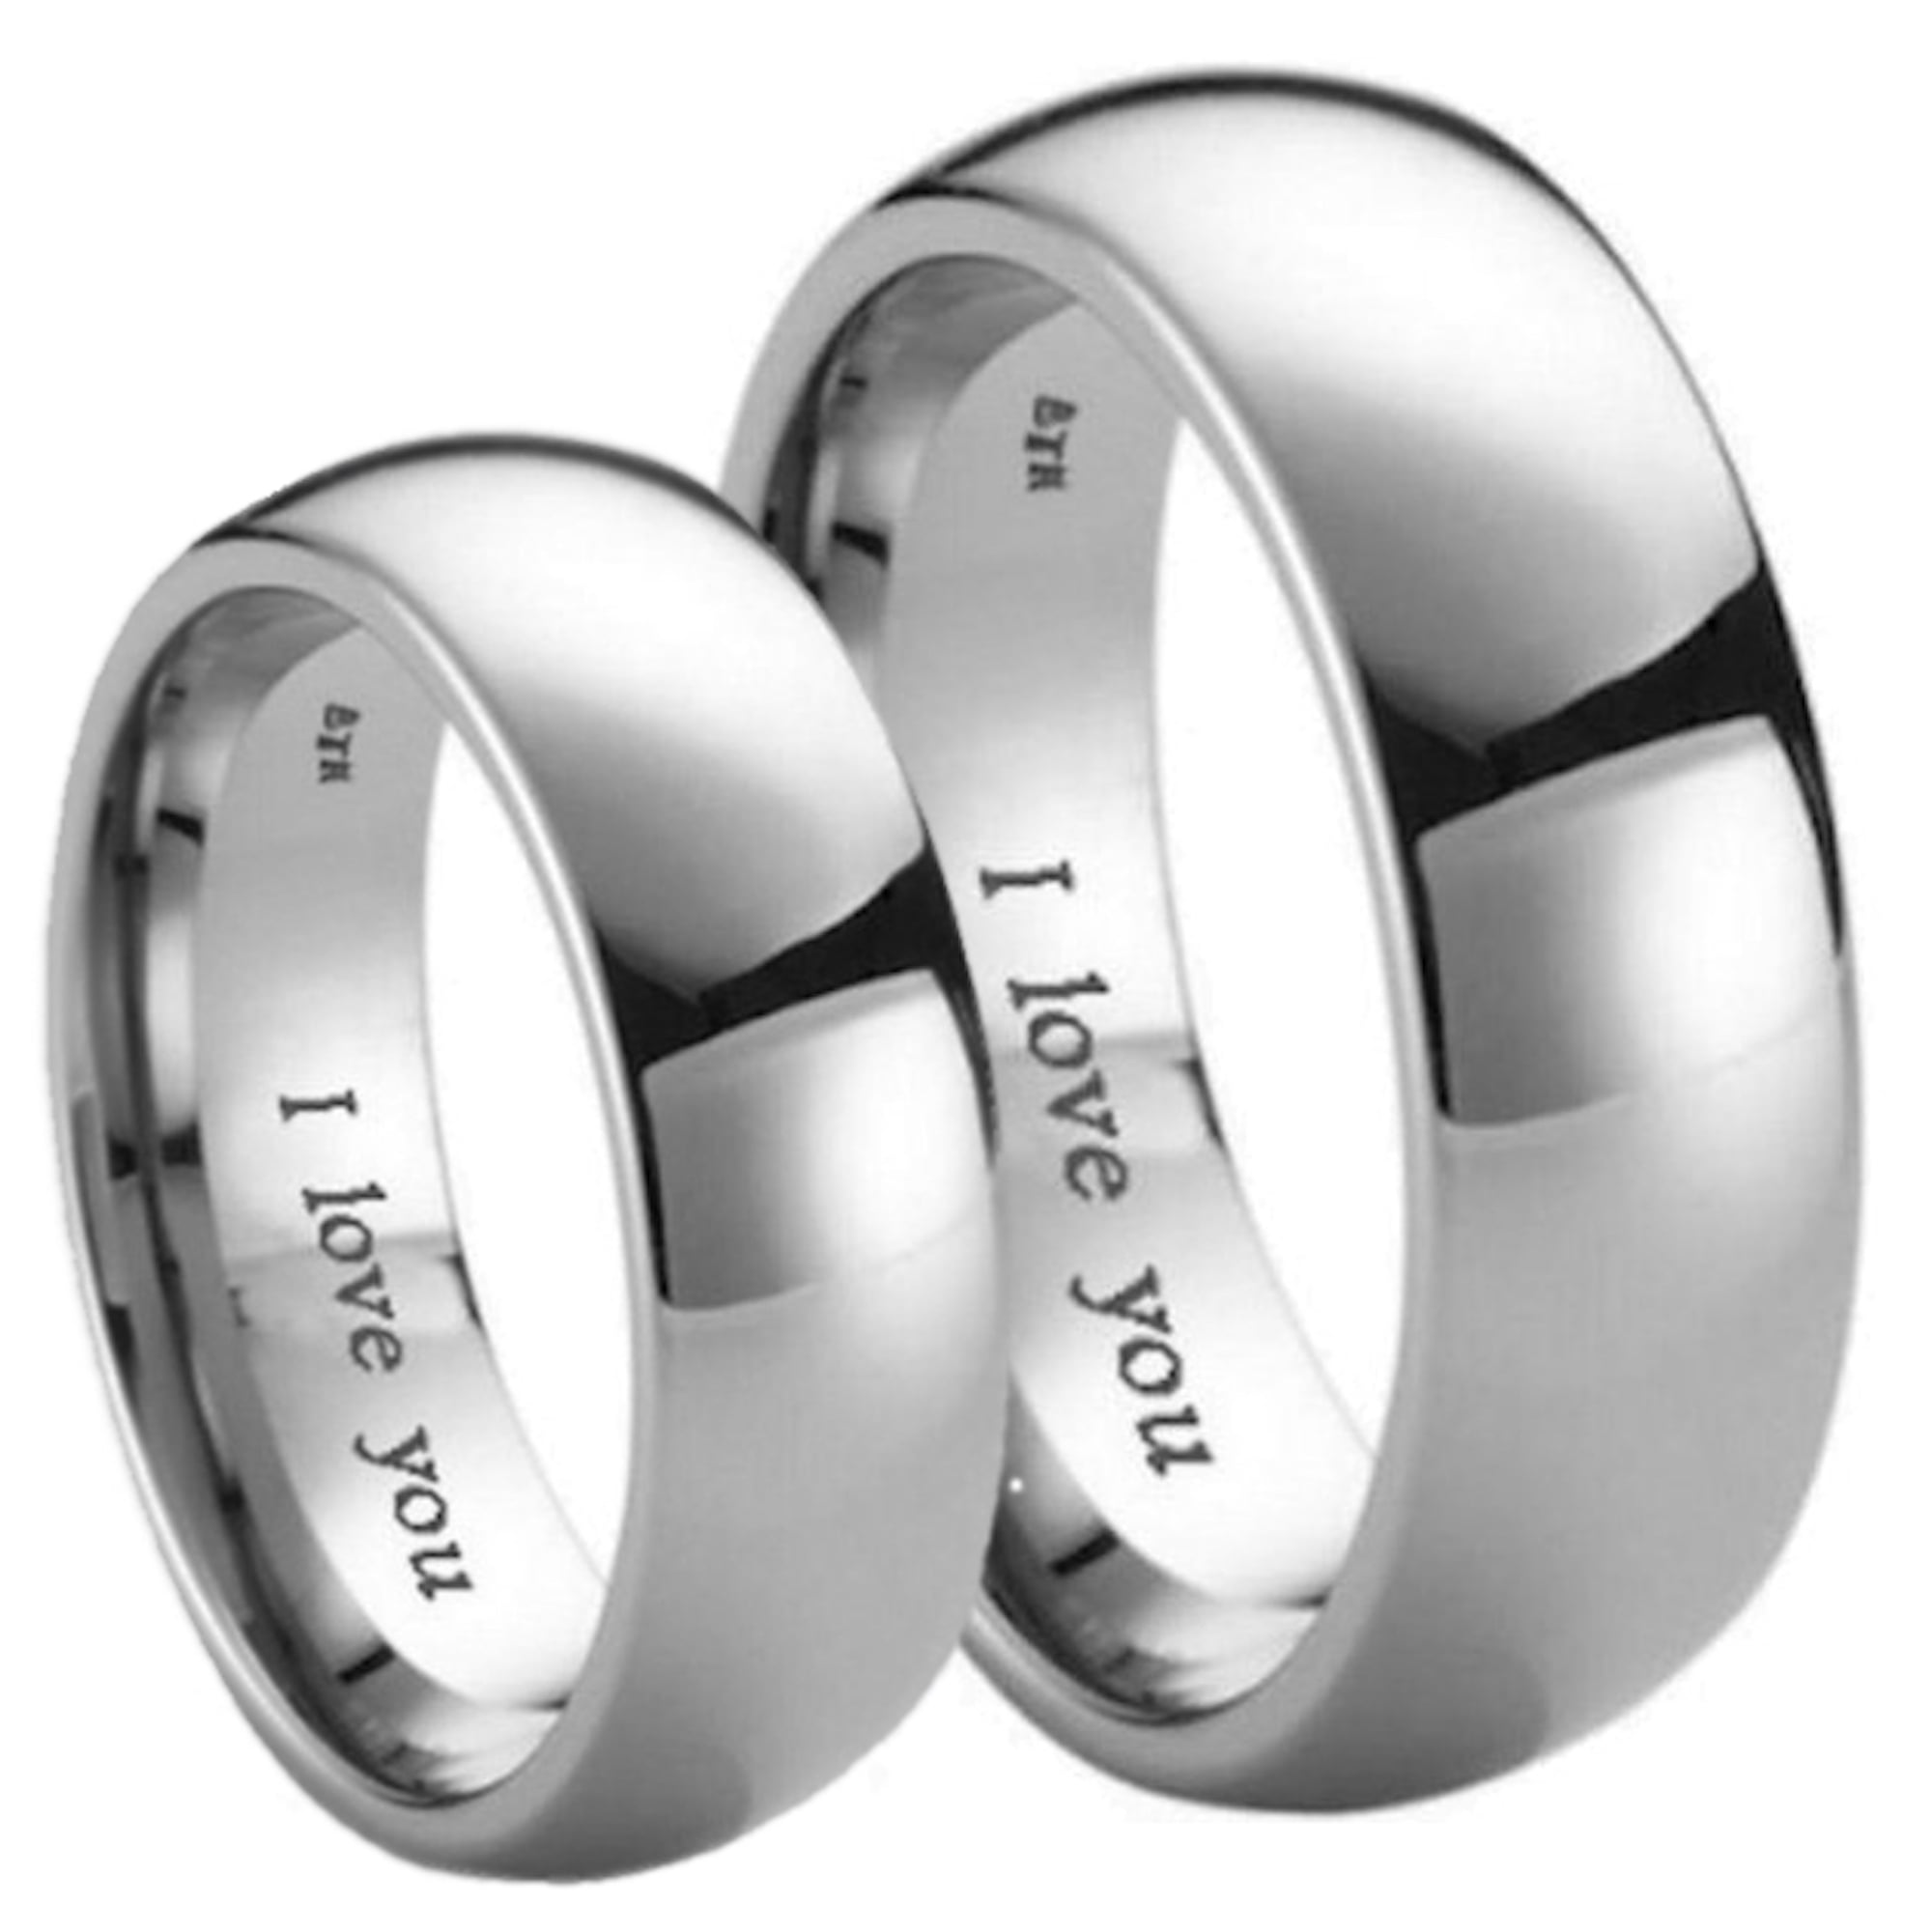 This is a graphic of His and Hers Matching Titanium Wedding Couple Ring Sets -Engraved with 'I Love You'